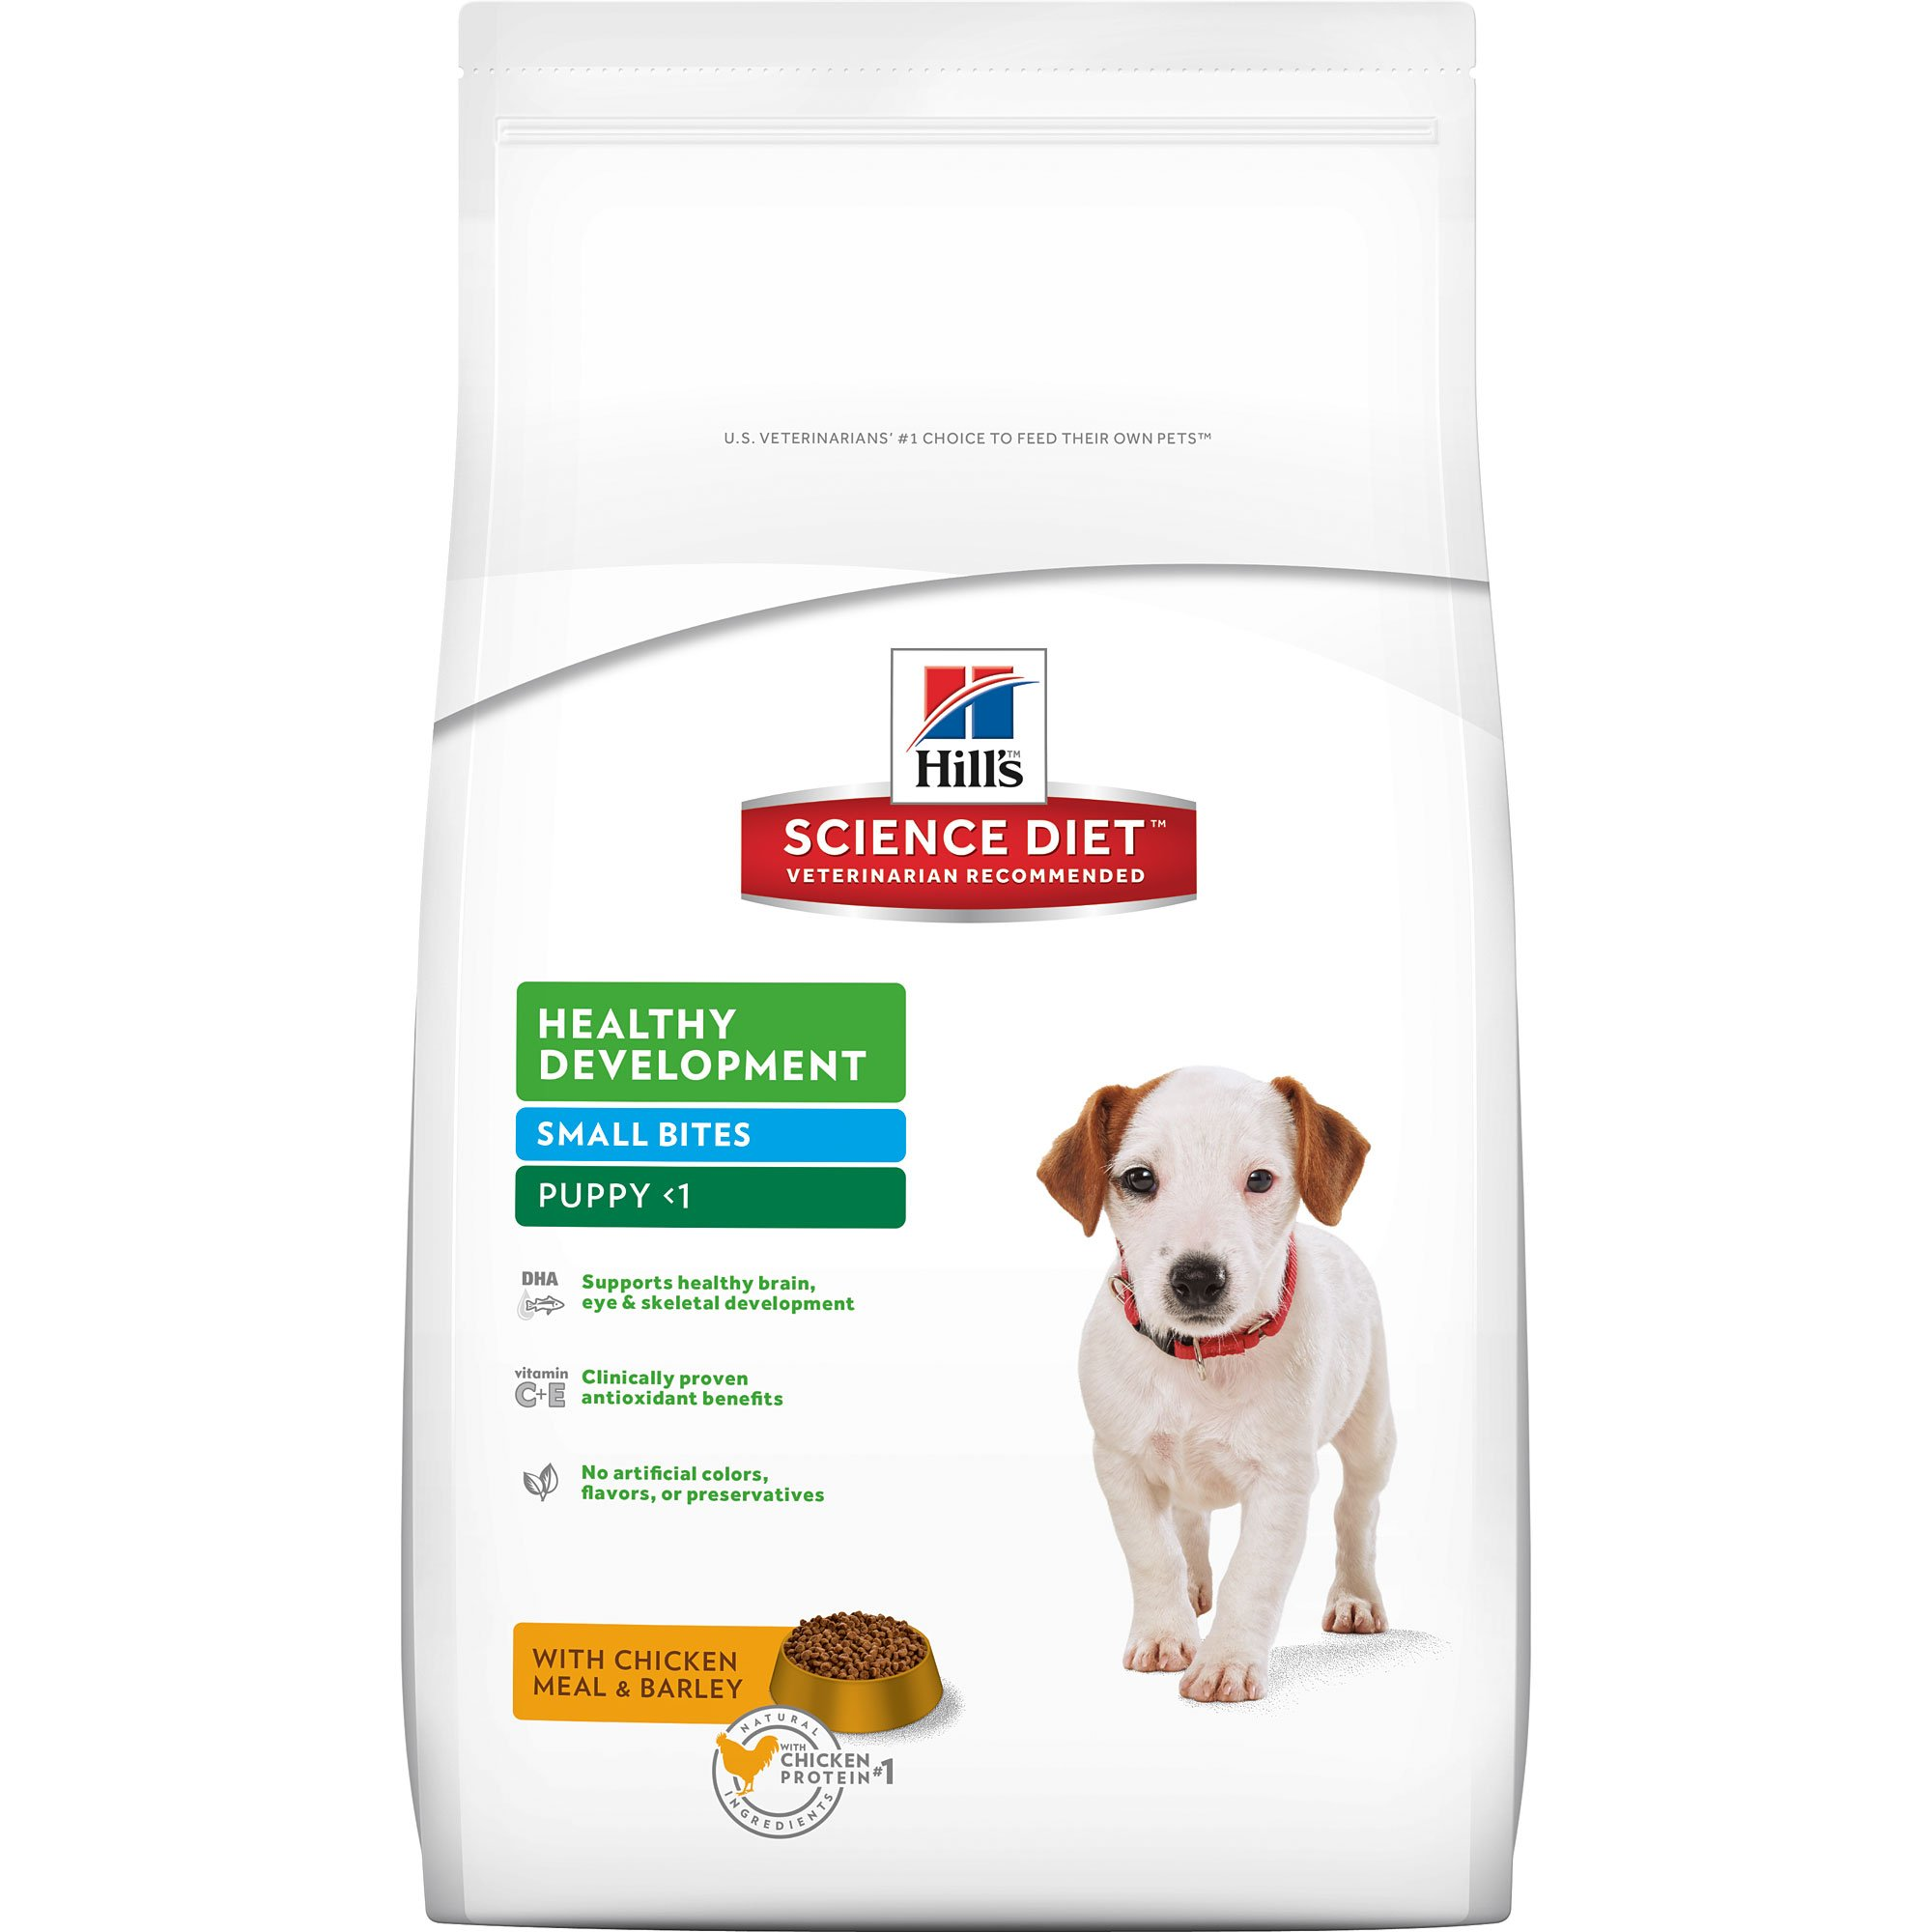 Hills Science Diet Small Bites Puppy Dog Food - Ofypets